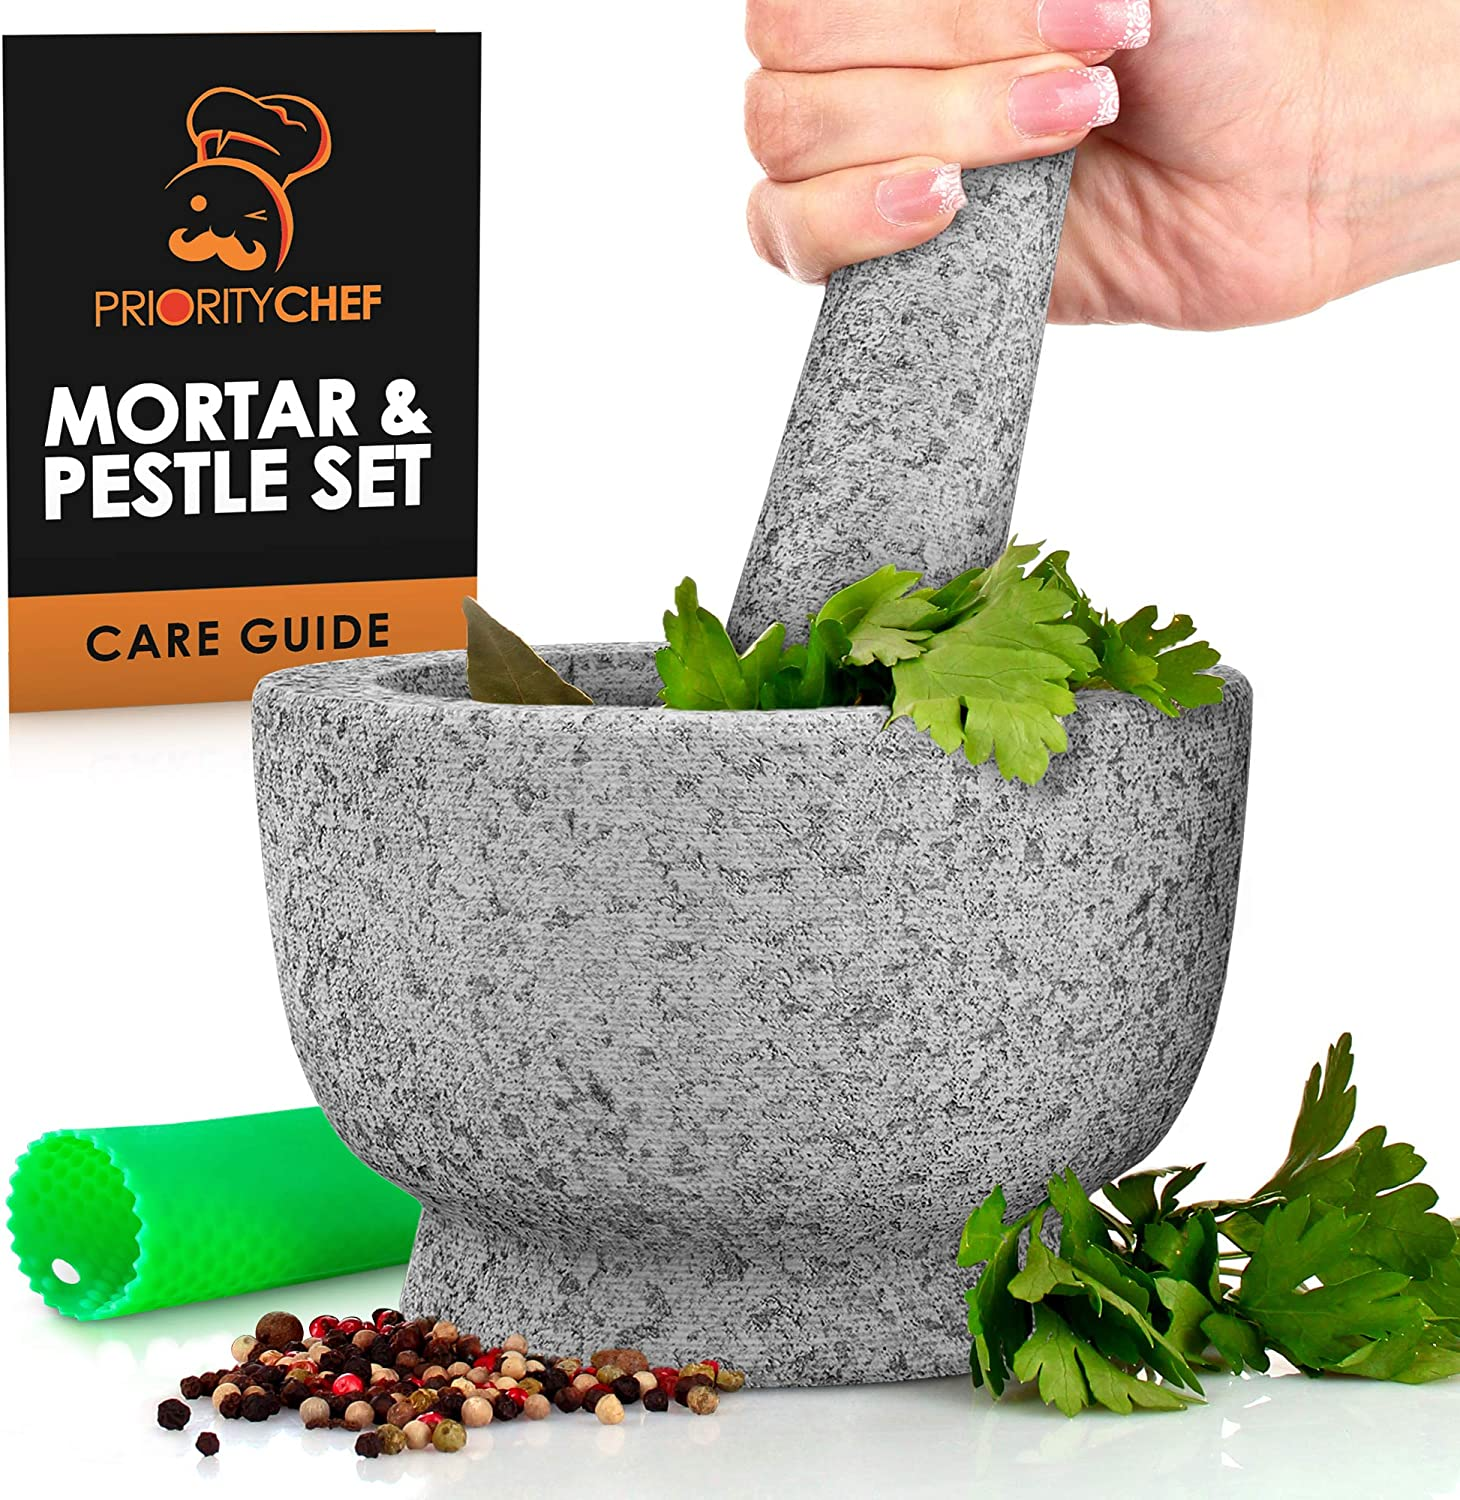 PriorityChef Mortar and Pestle Set - 100% Natural 2 Cup Unpolished Granite - Grind, Crush & Mash Spices and More - Easy to Use & Clean - Solid Stone Mortar and Pestle Large